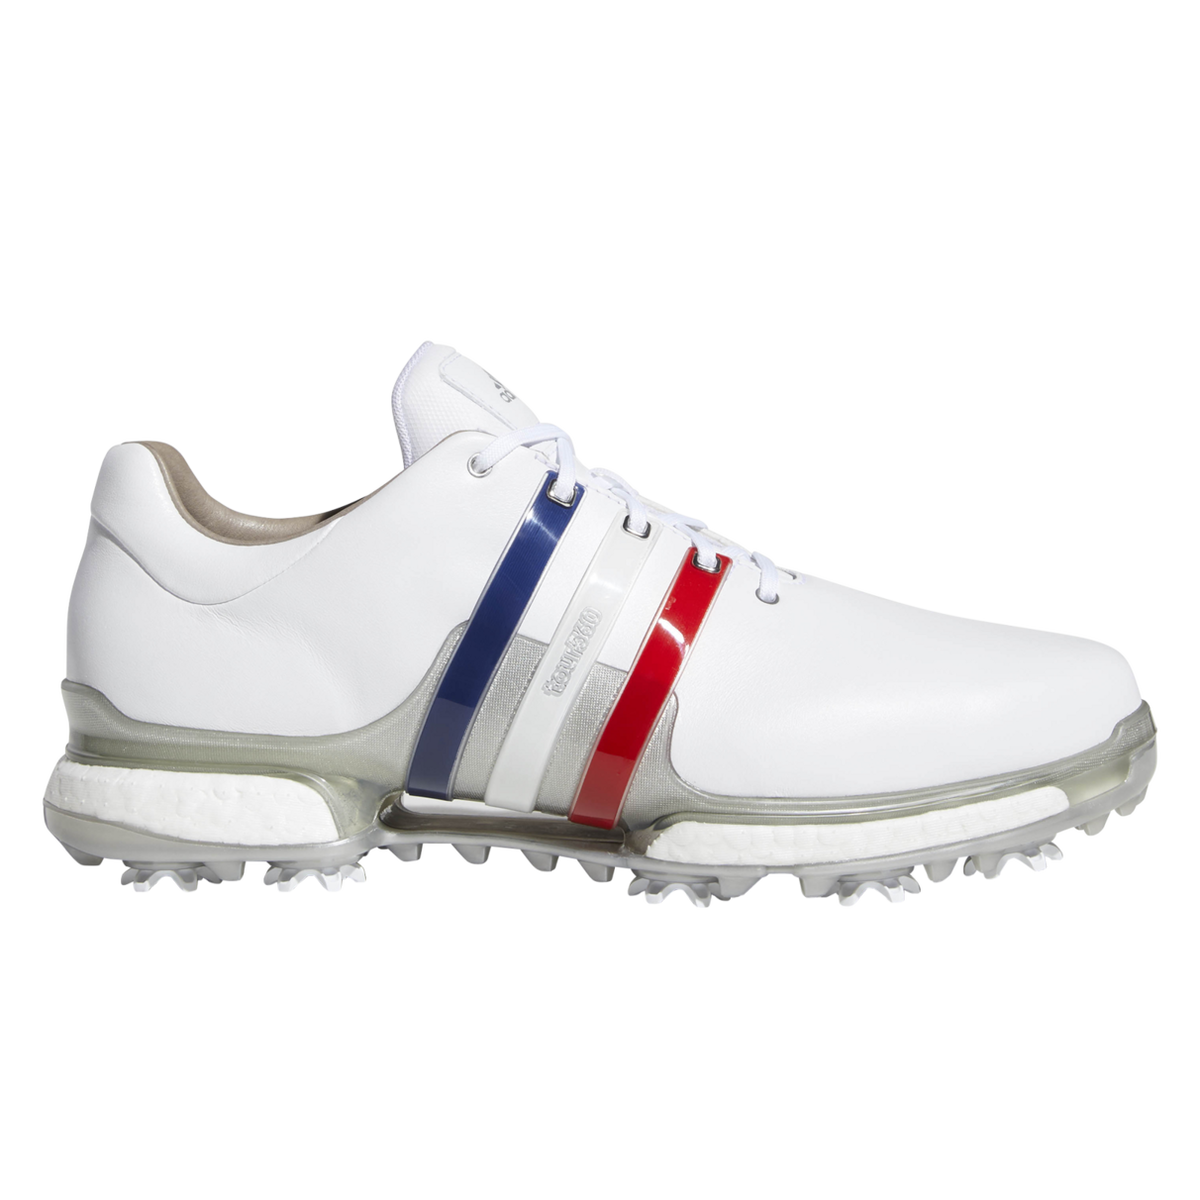 60af7869acc adidas TOUR 360 Boost 2.0 USA Men s Golf Shoes - Red White Blue ...